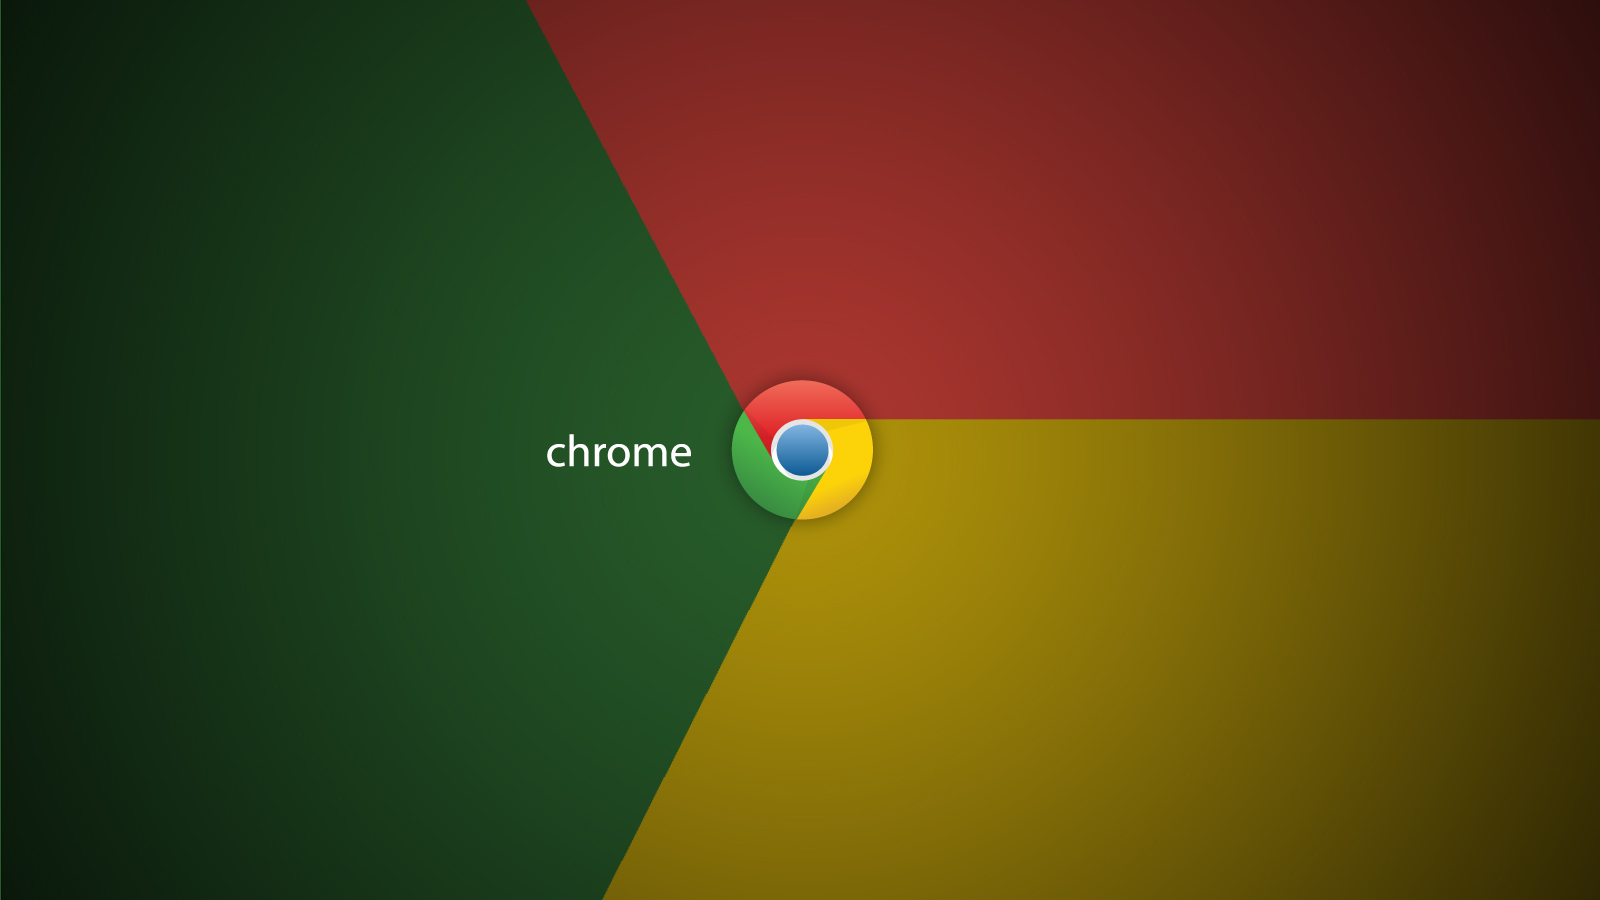 Chrome Wallpaper